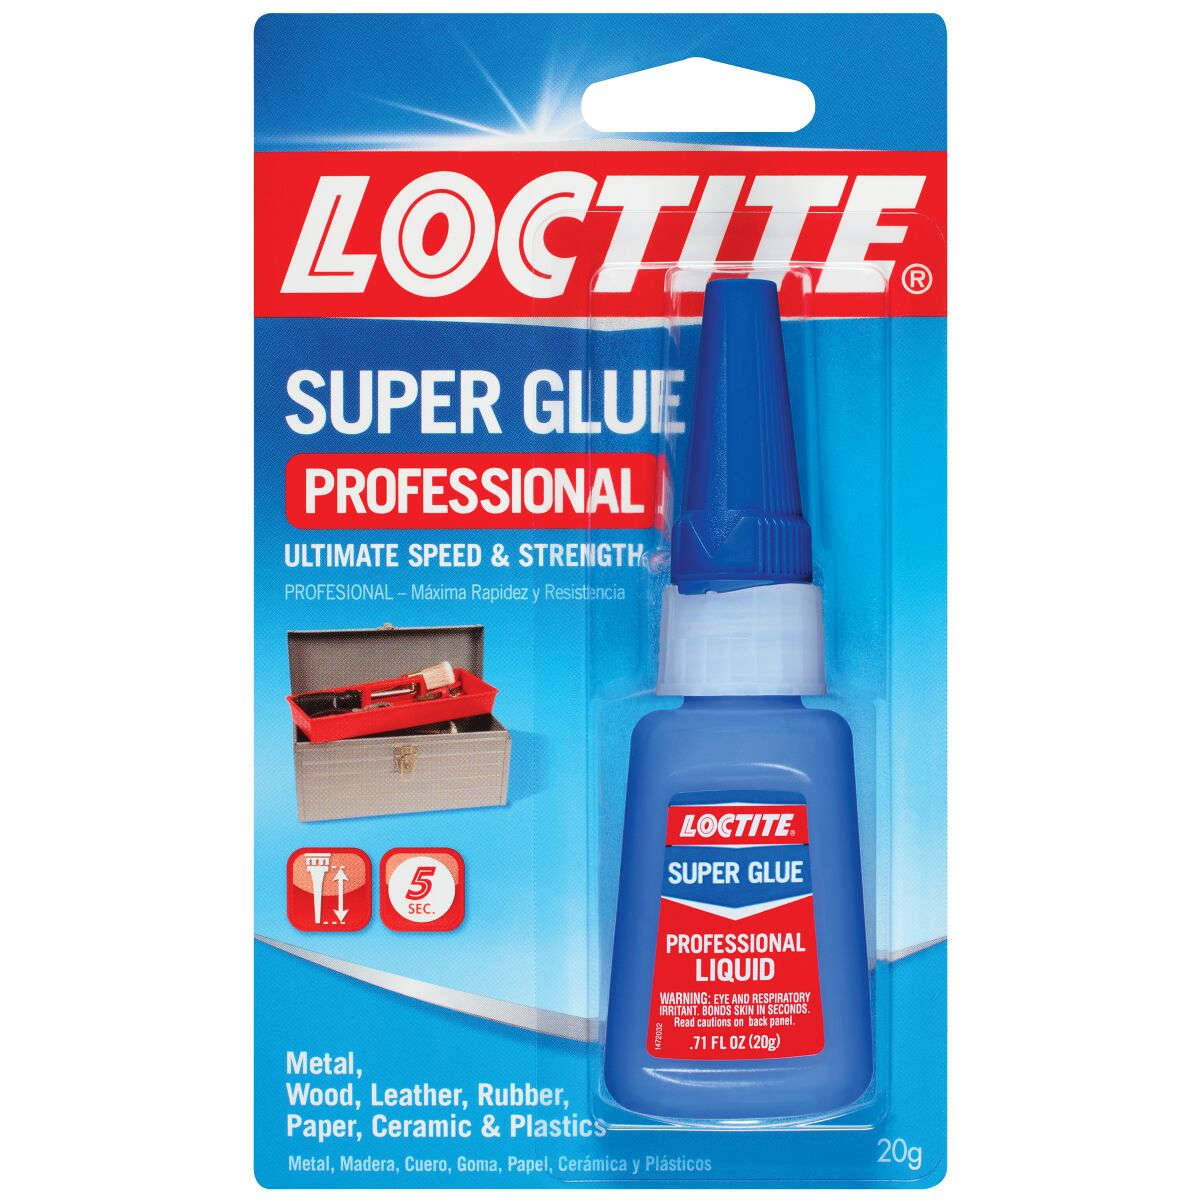 Loctite Super Glue Professional Bottle